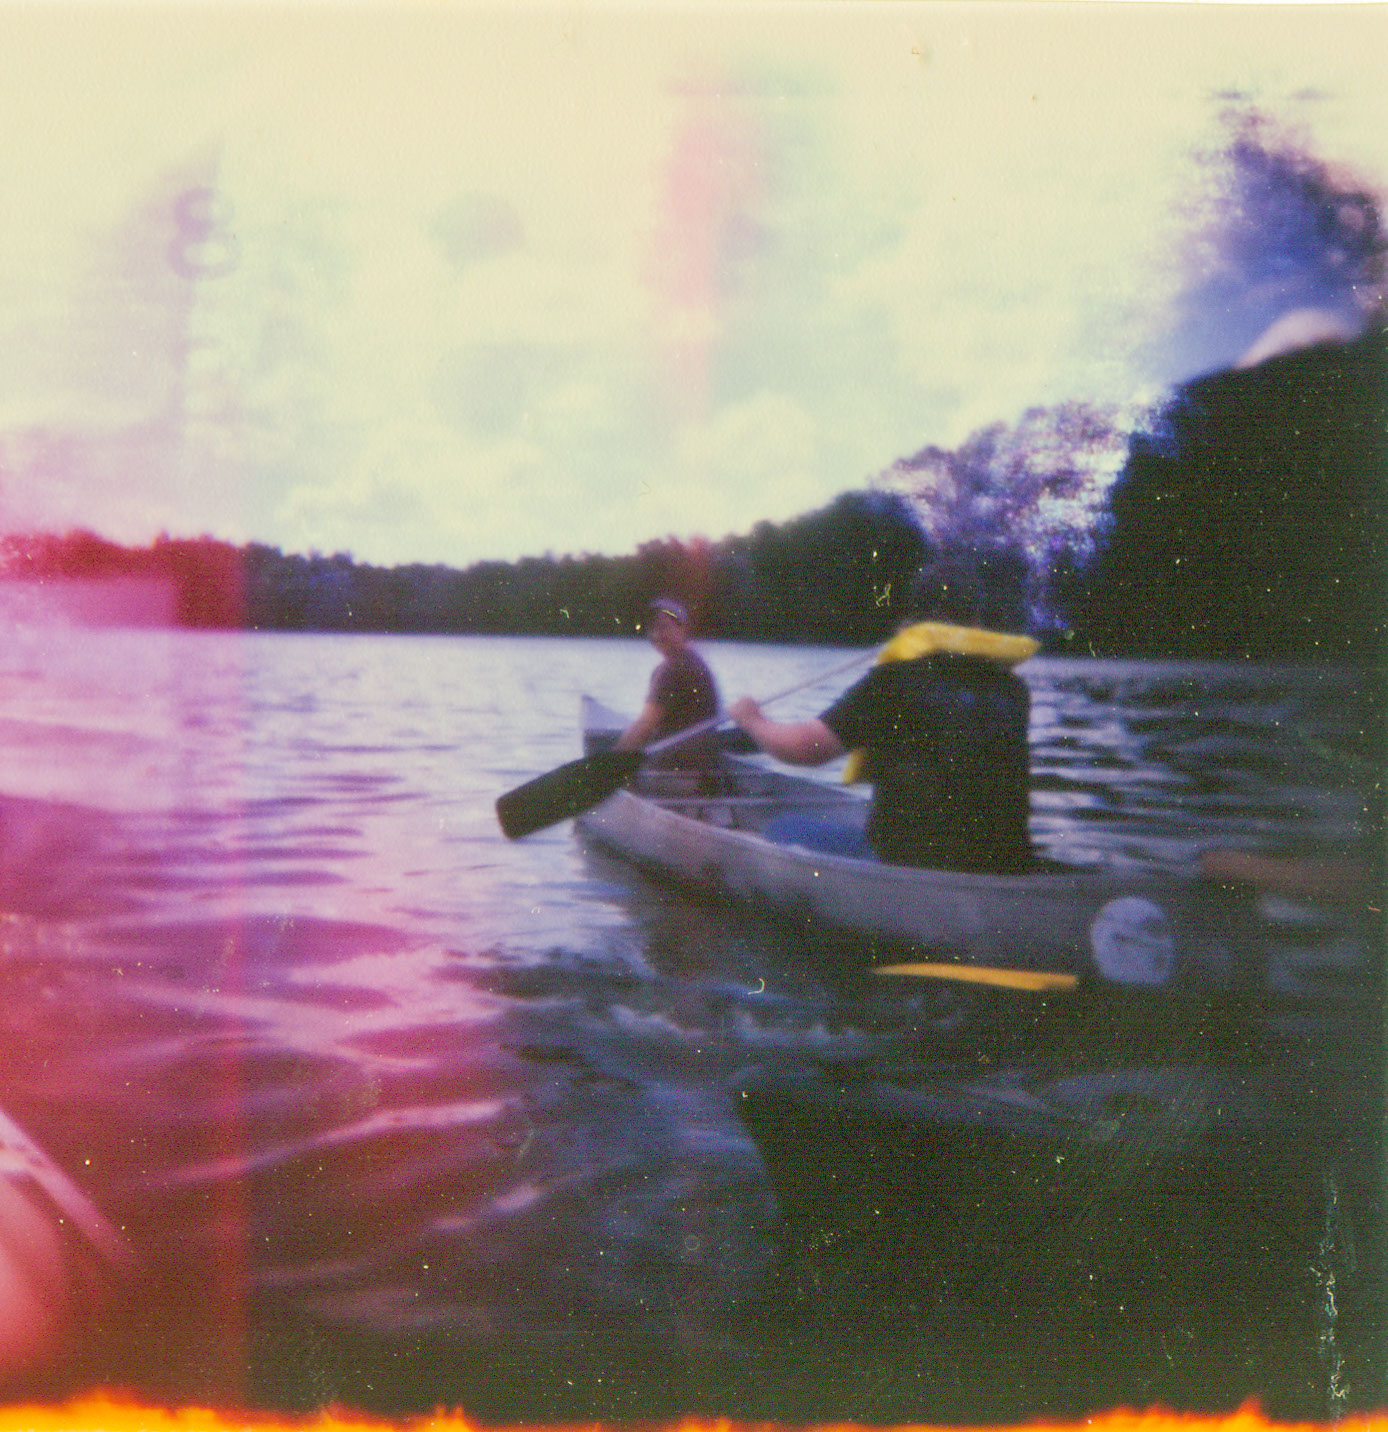 120-Holga-Ned-and-Sarah-Canoe-White-River-State-Park-www.wmiii.co-1